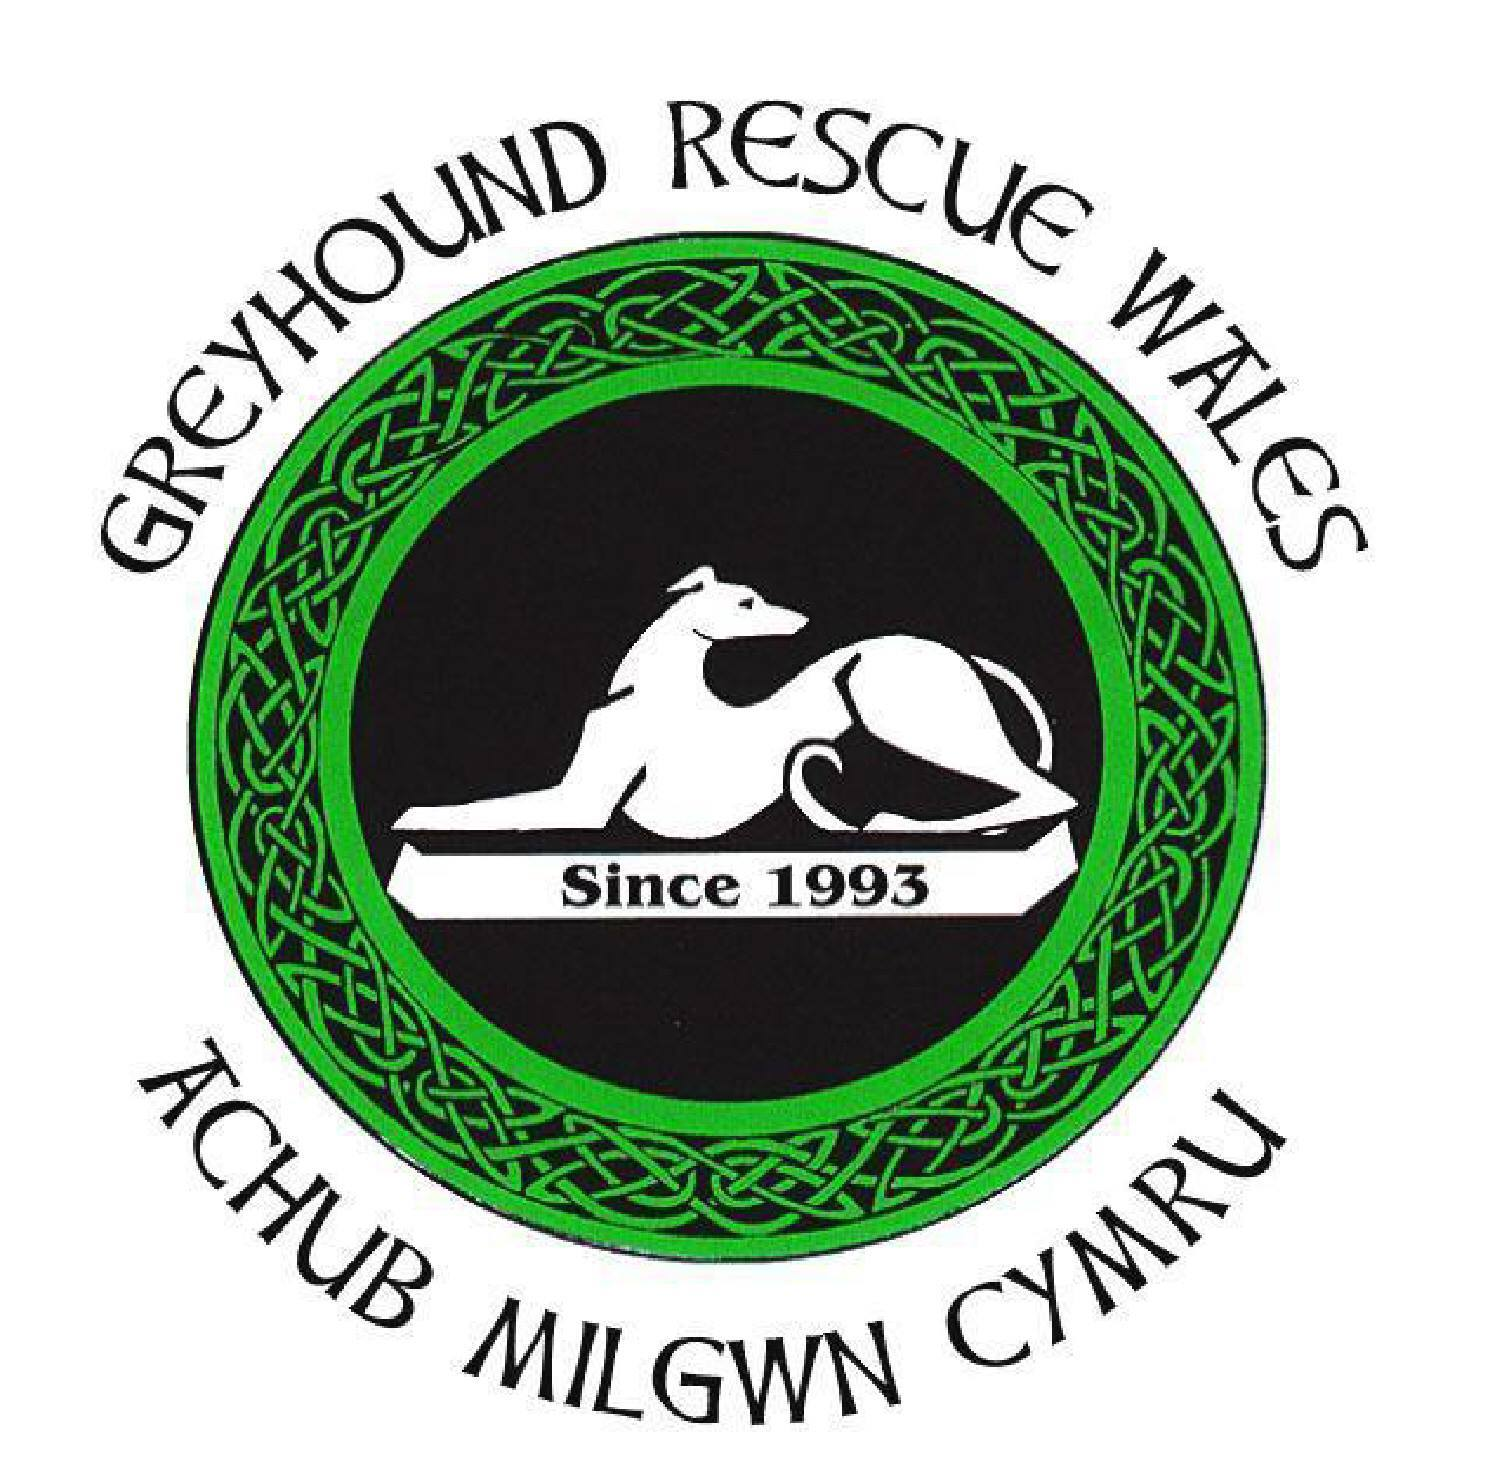 Greyhound Rescue Wales